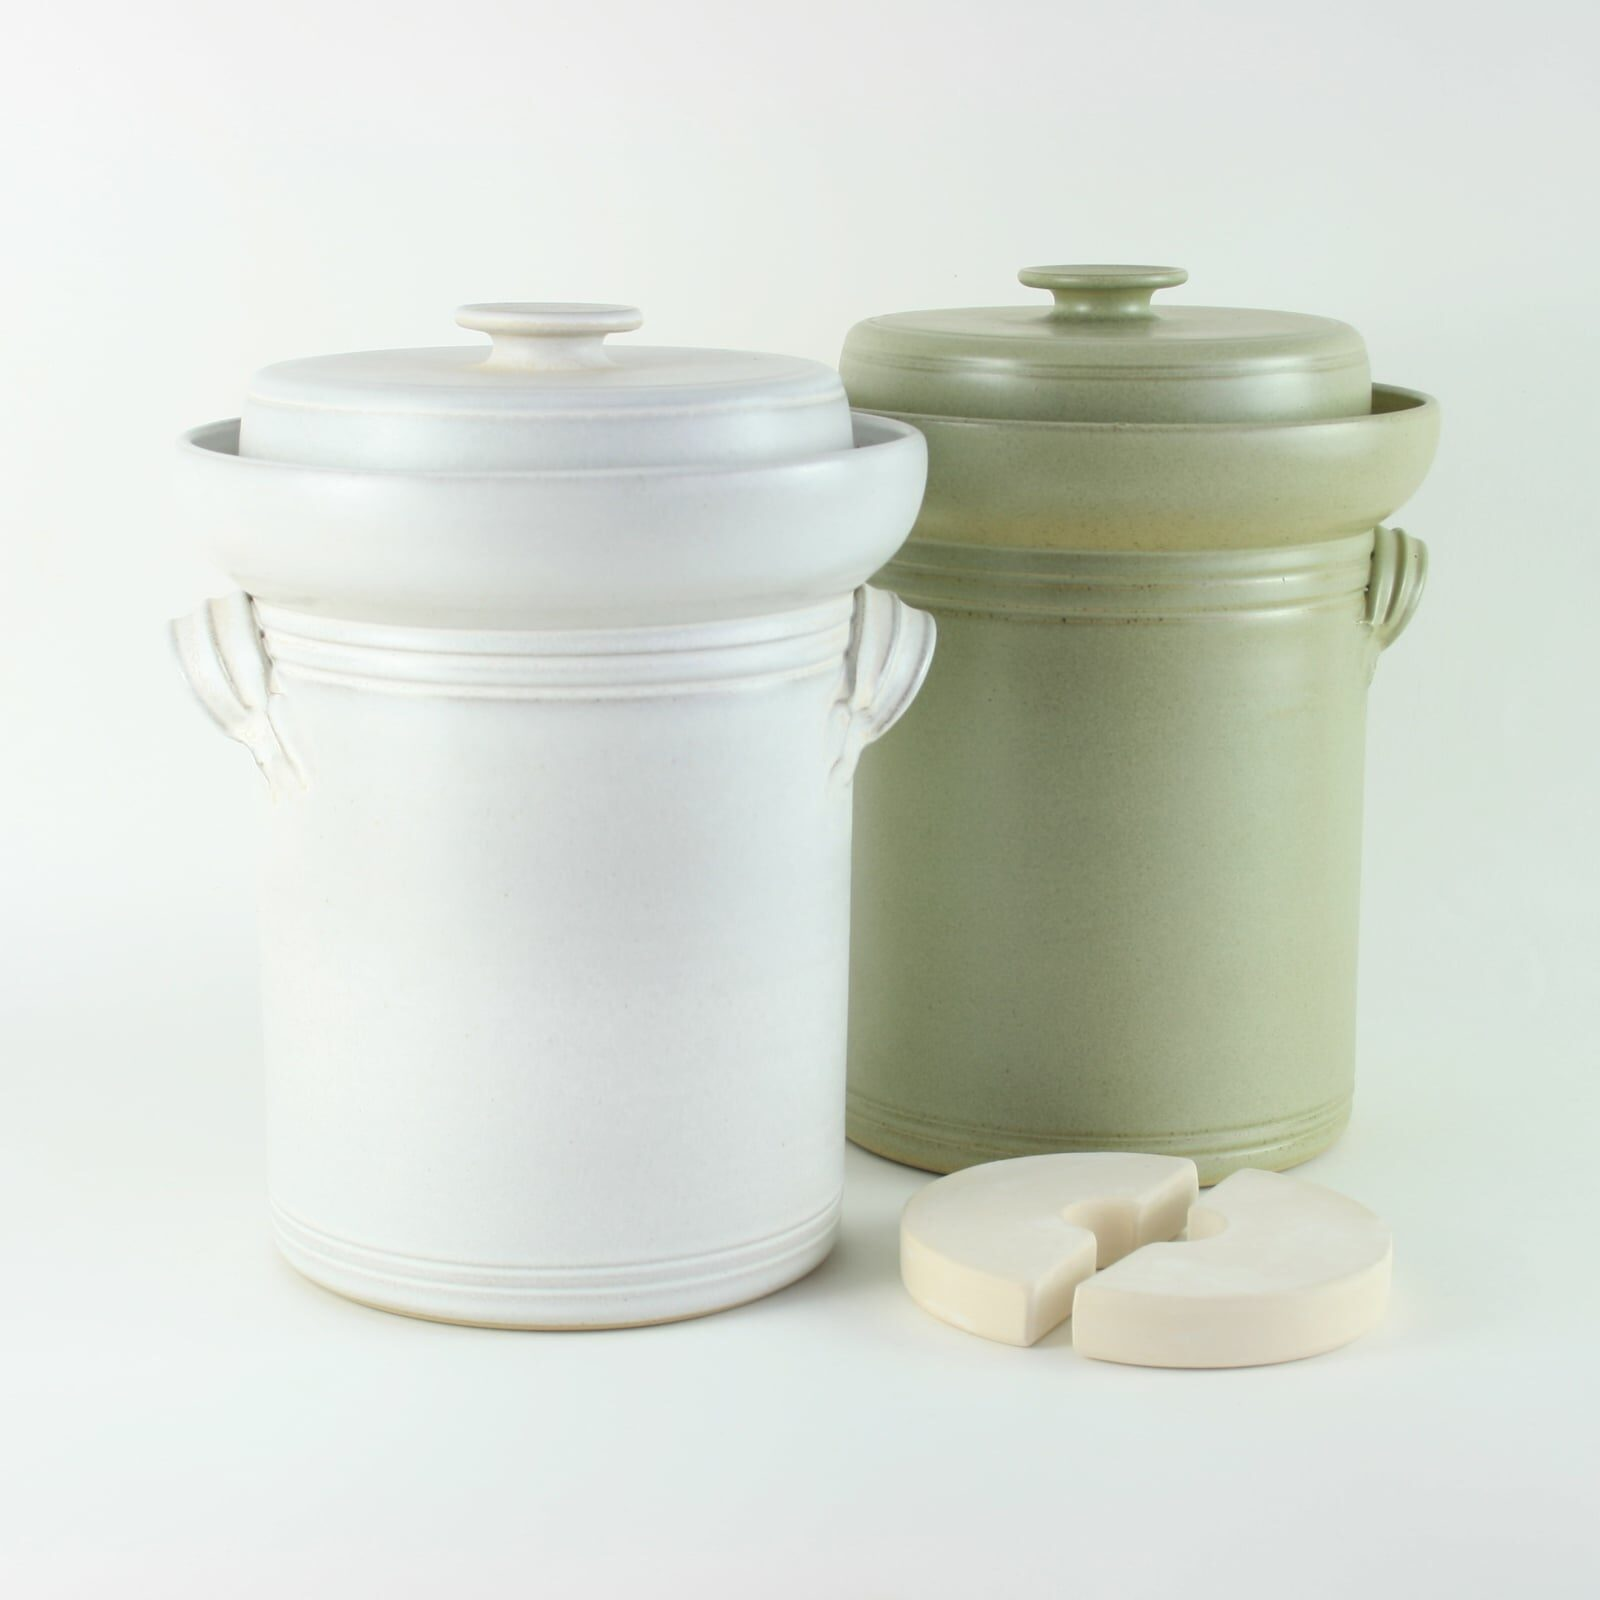 handmade 4 litre ceramic fermentation crocks for making sauerkraut, kimchi and pickles